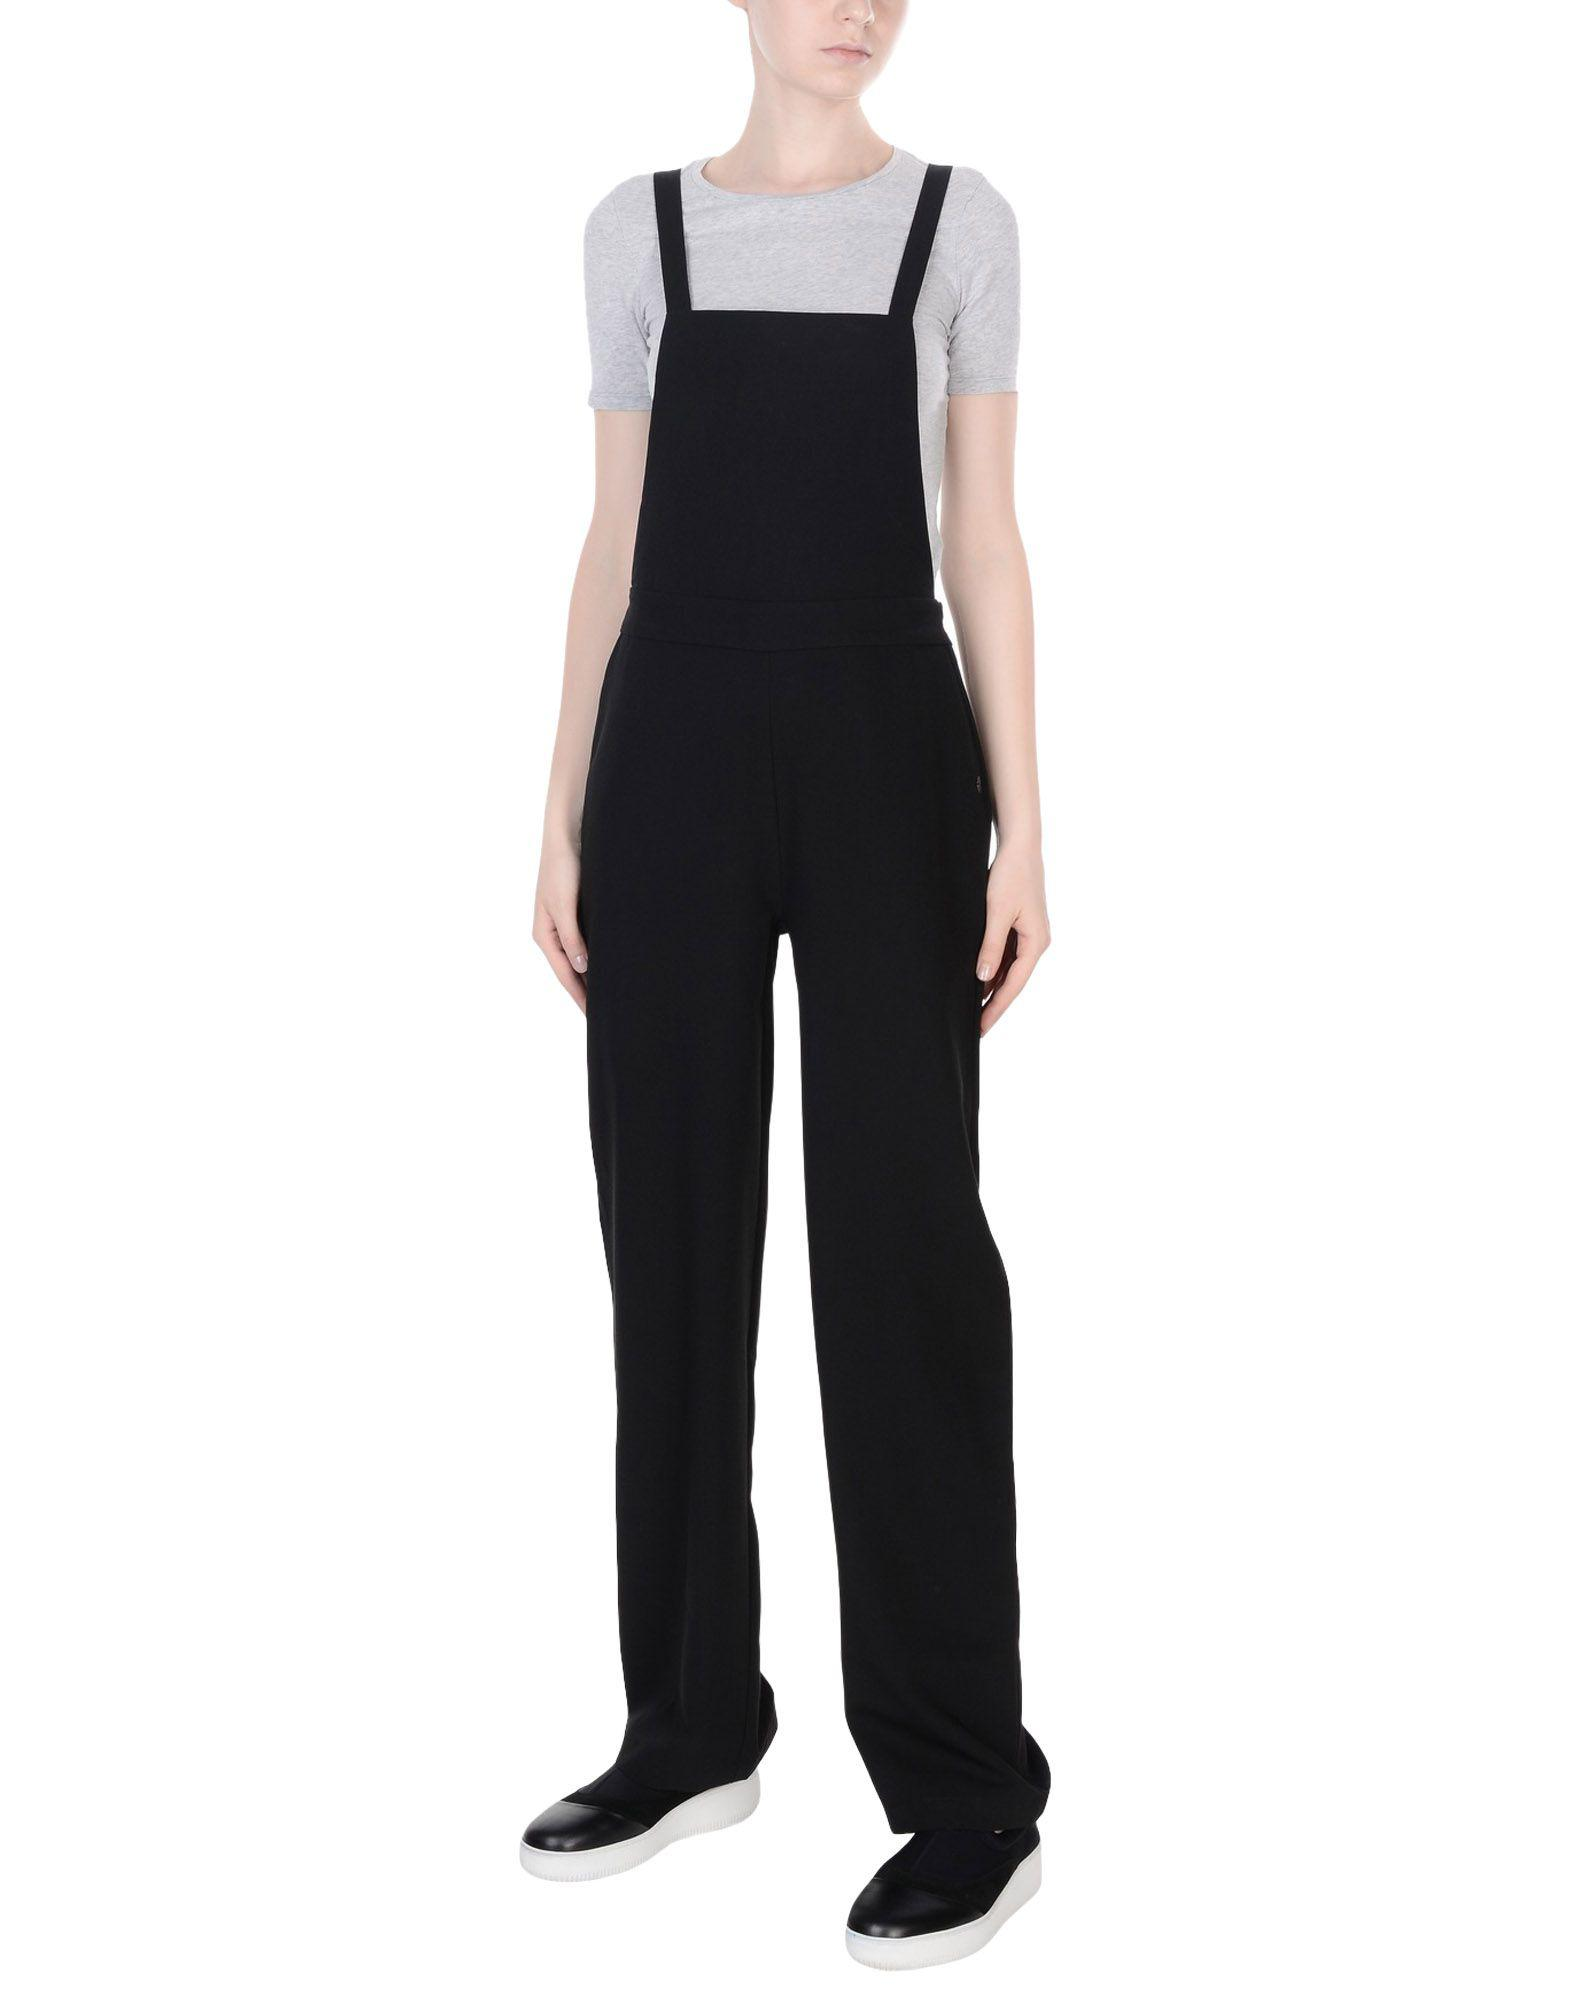 9a7f738973 Lyst - Numph Overalls in Black